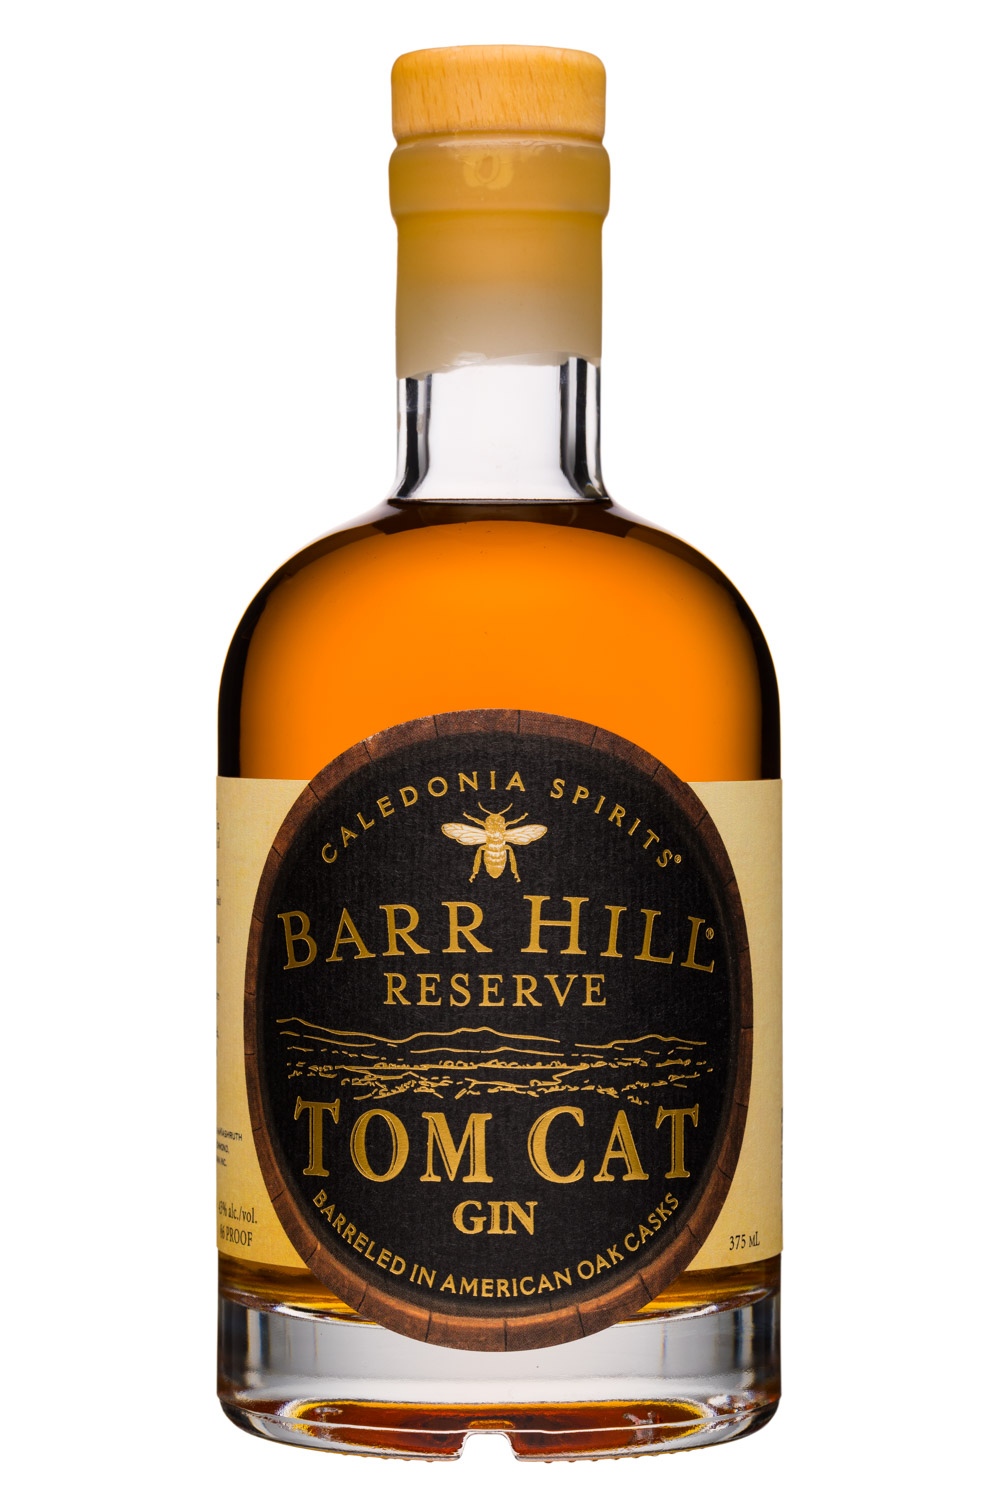 Barr Hill Reserve - Tom Cat Gin